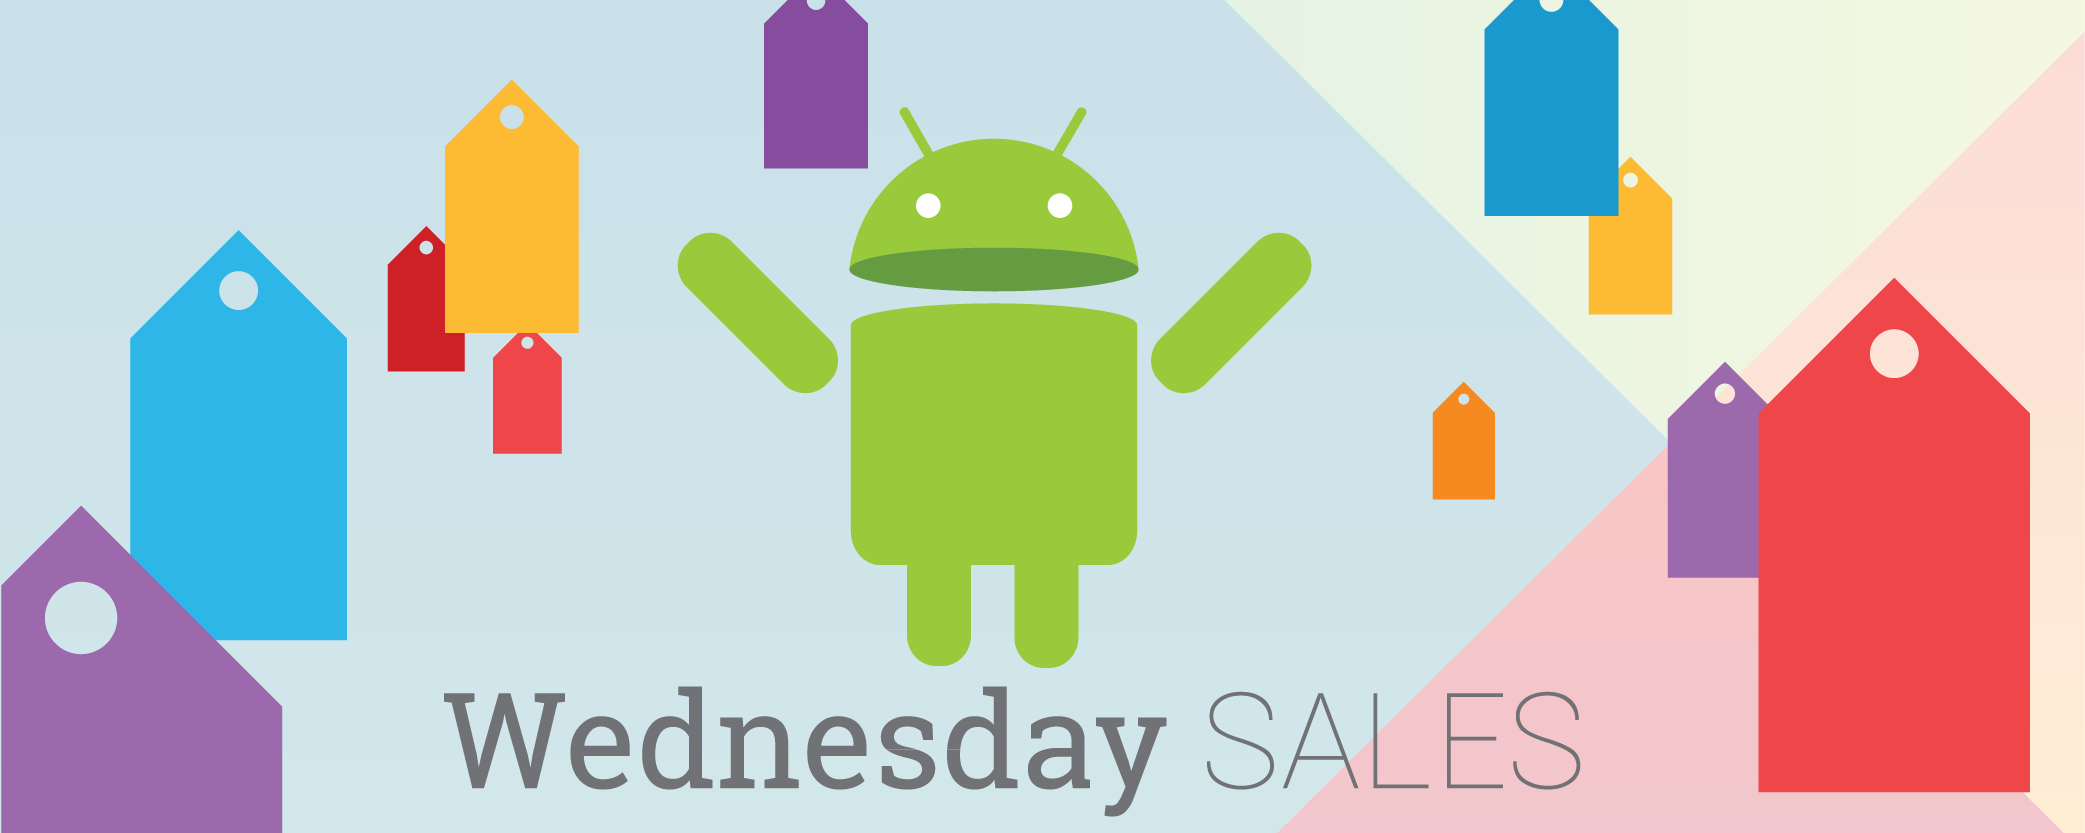 27 temporarily free and 26 on-sale apps and games for Wednesday